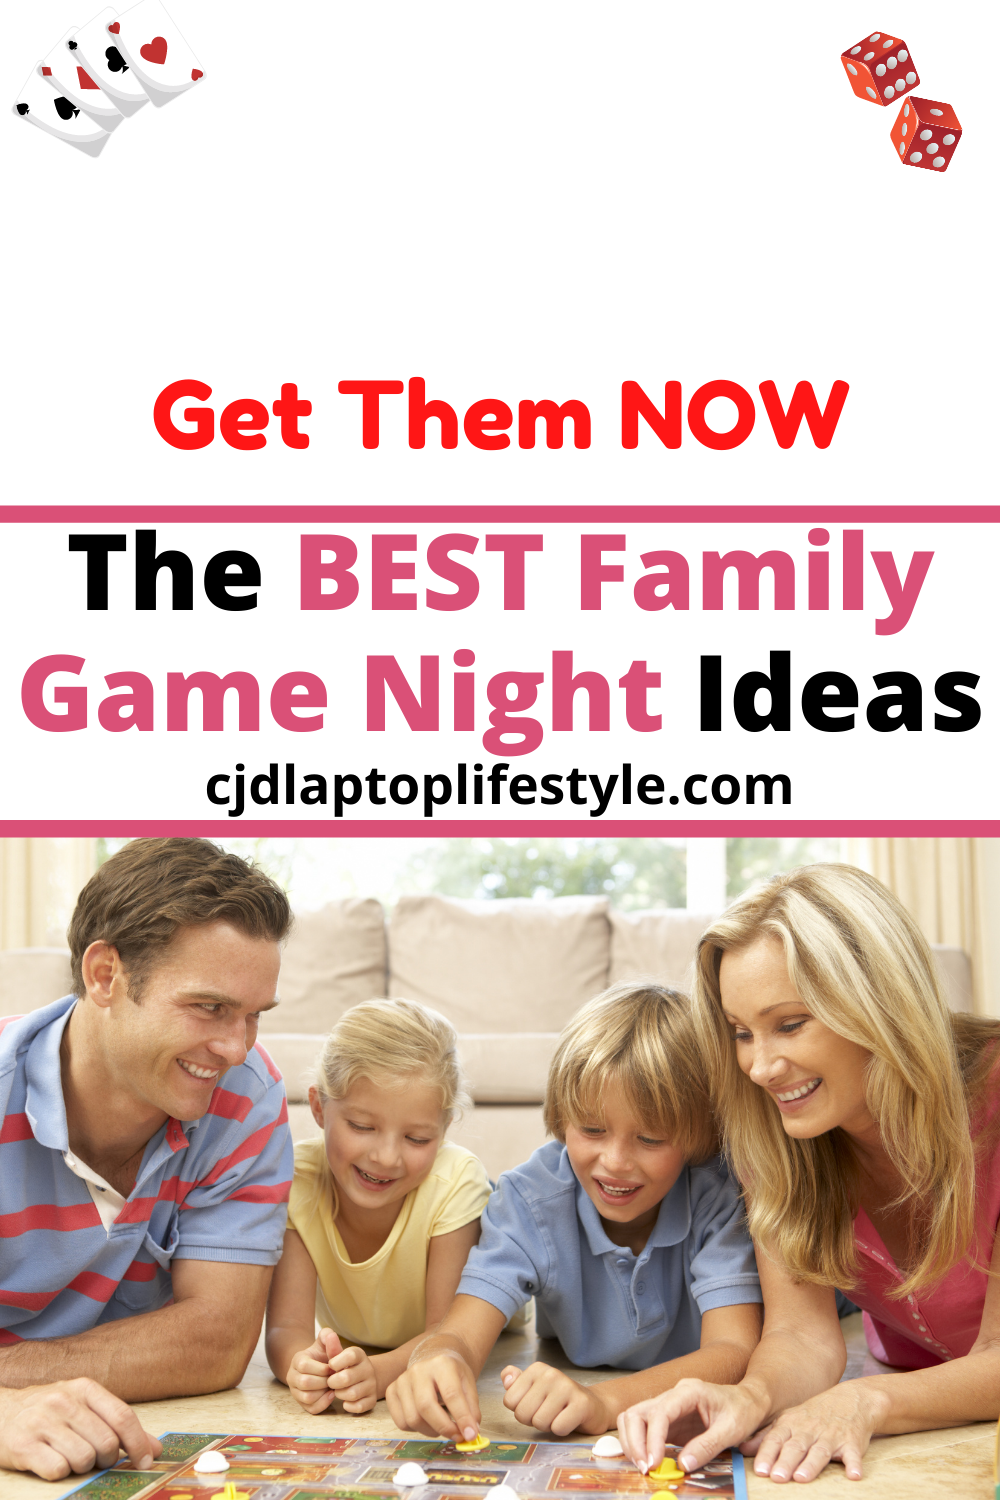 The Best Family Game Night Ideas